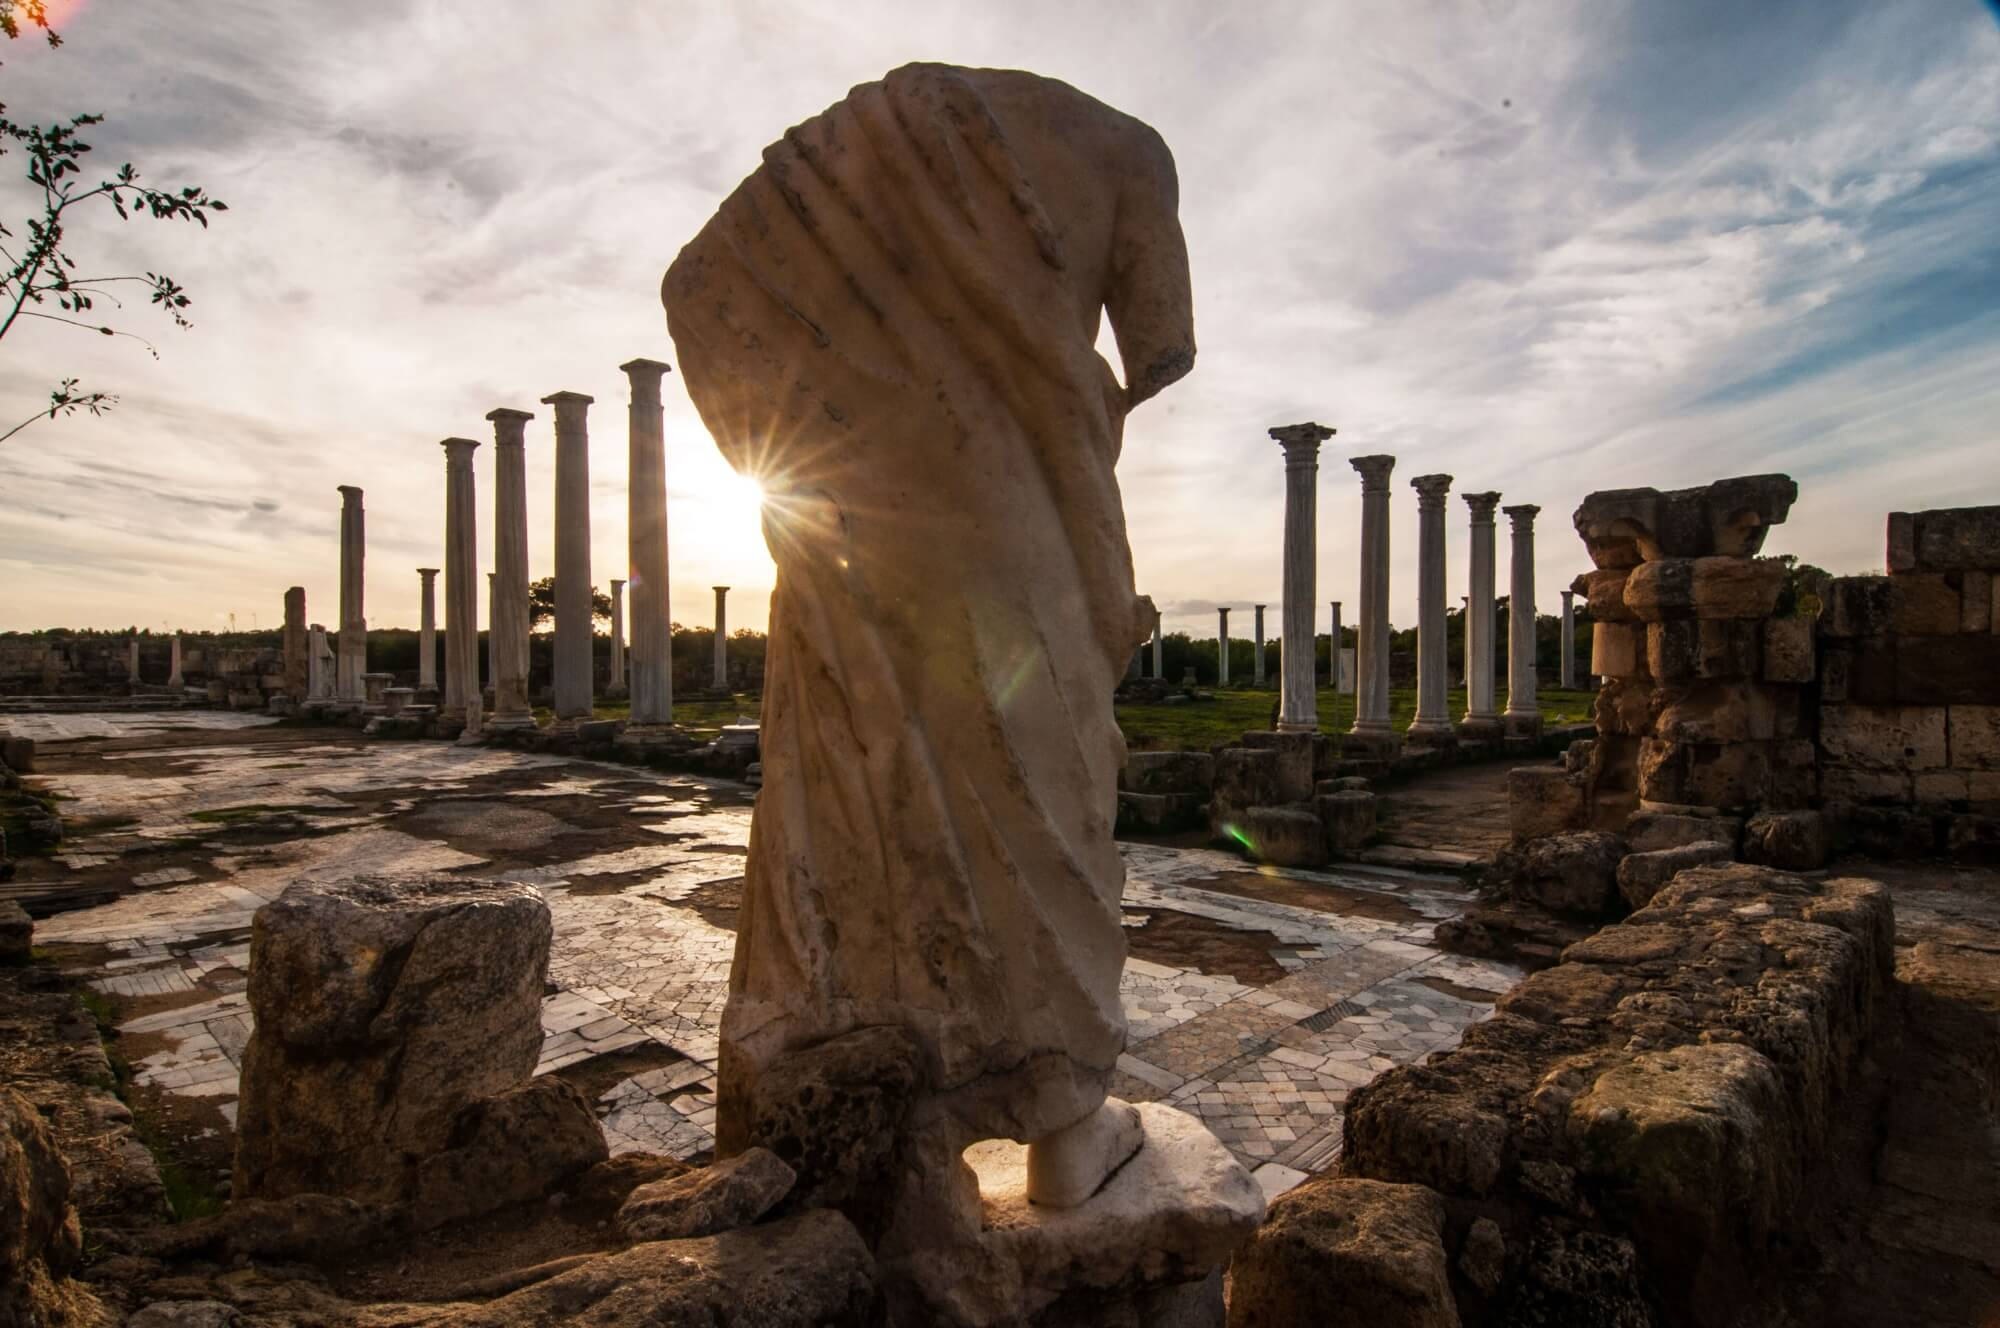 salamis ruins statue historical town